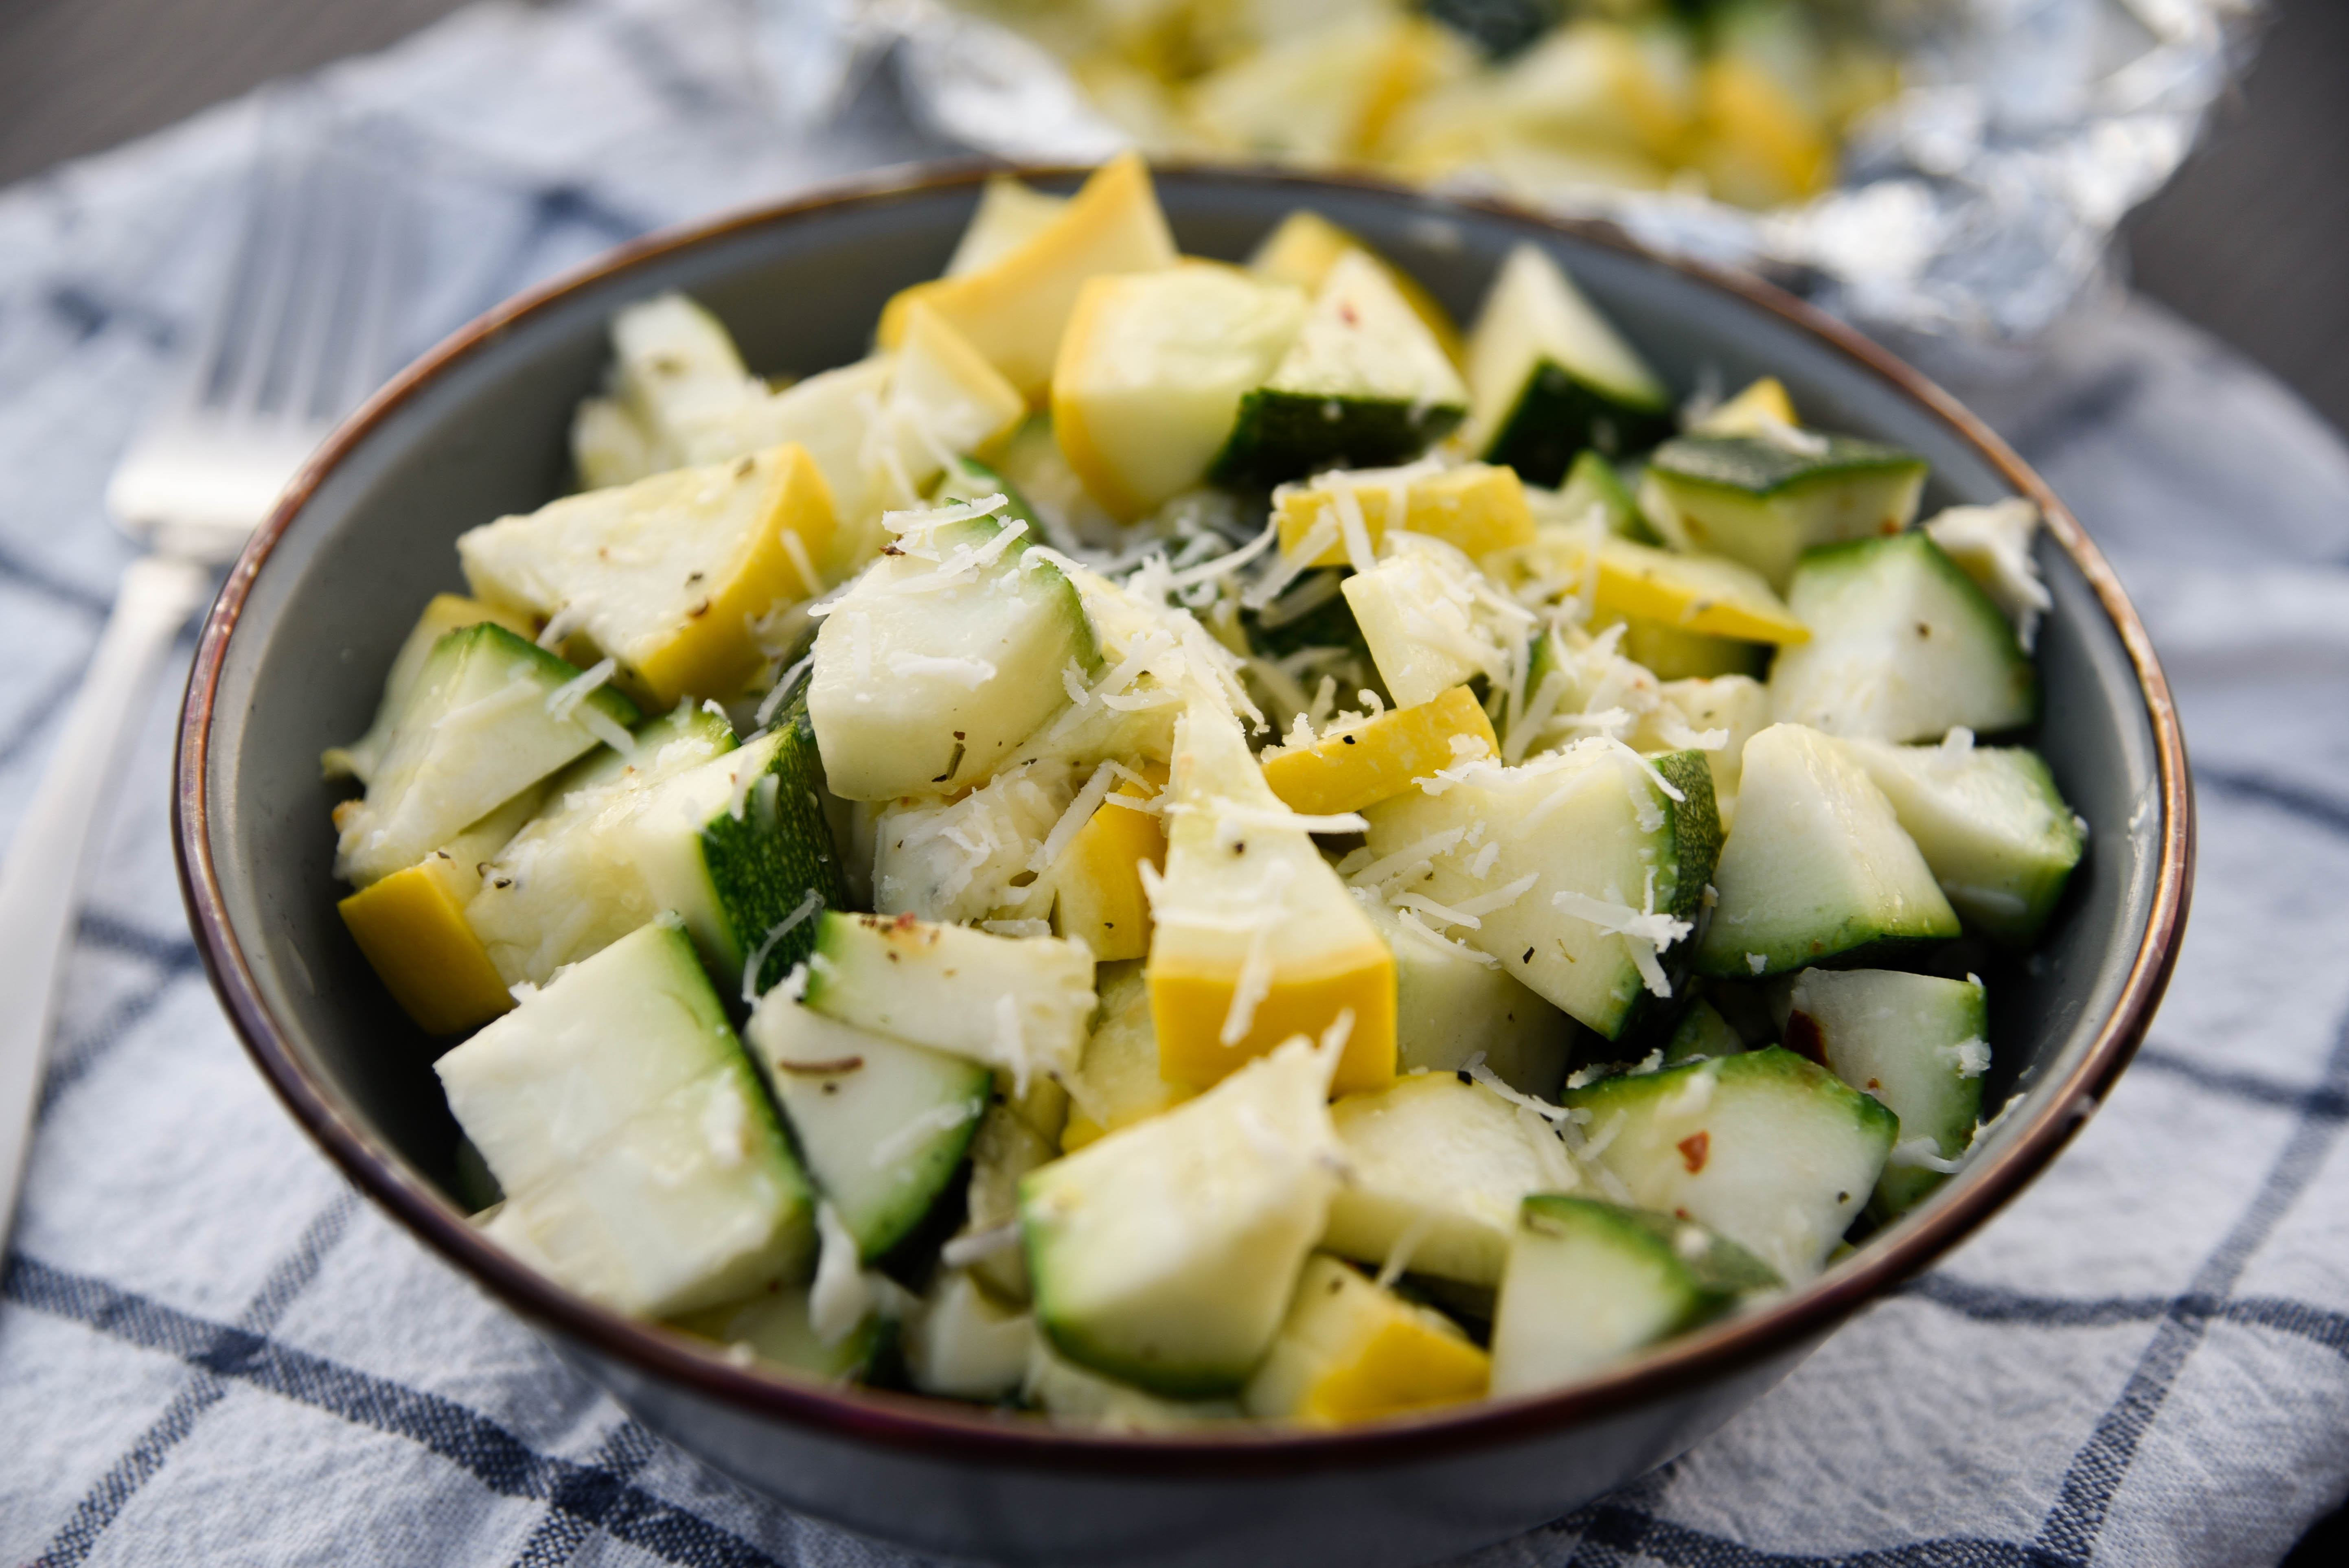 Bowl of Zuchini topped with cheese.